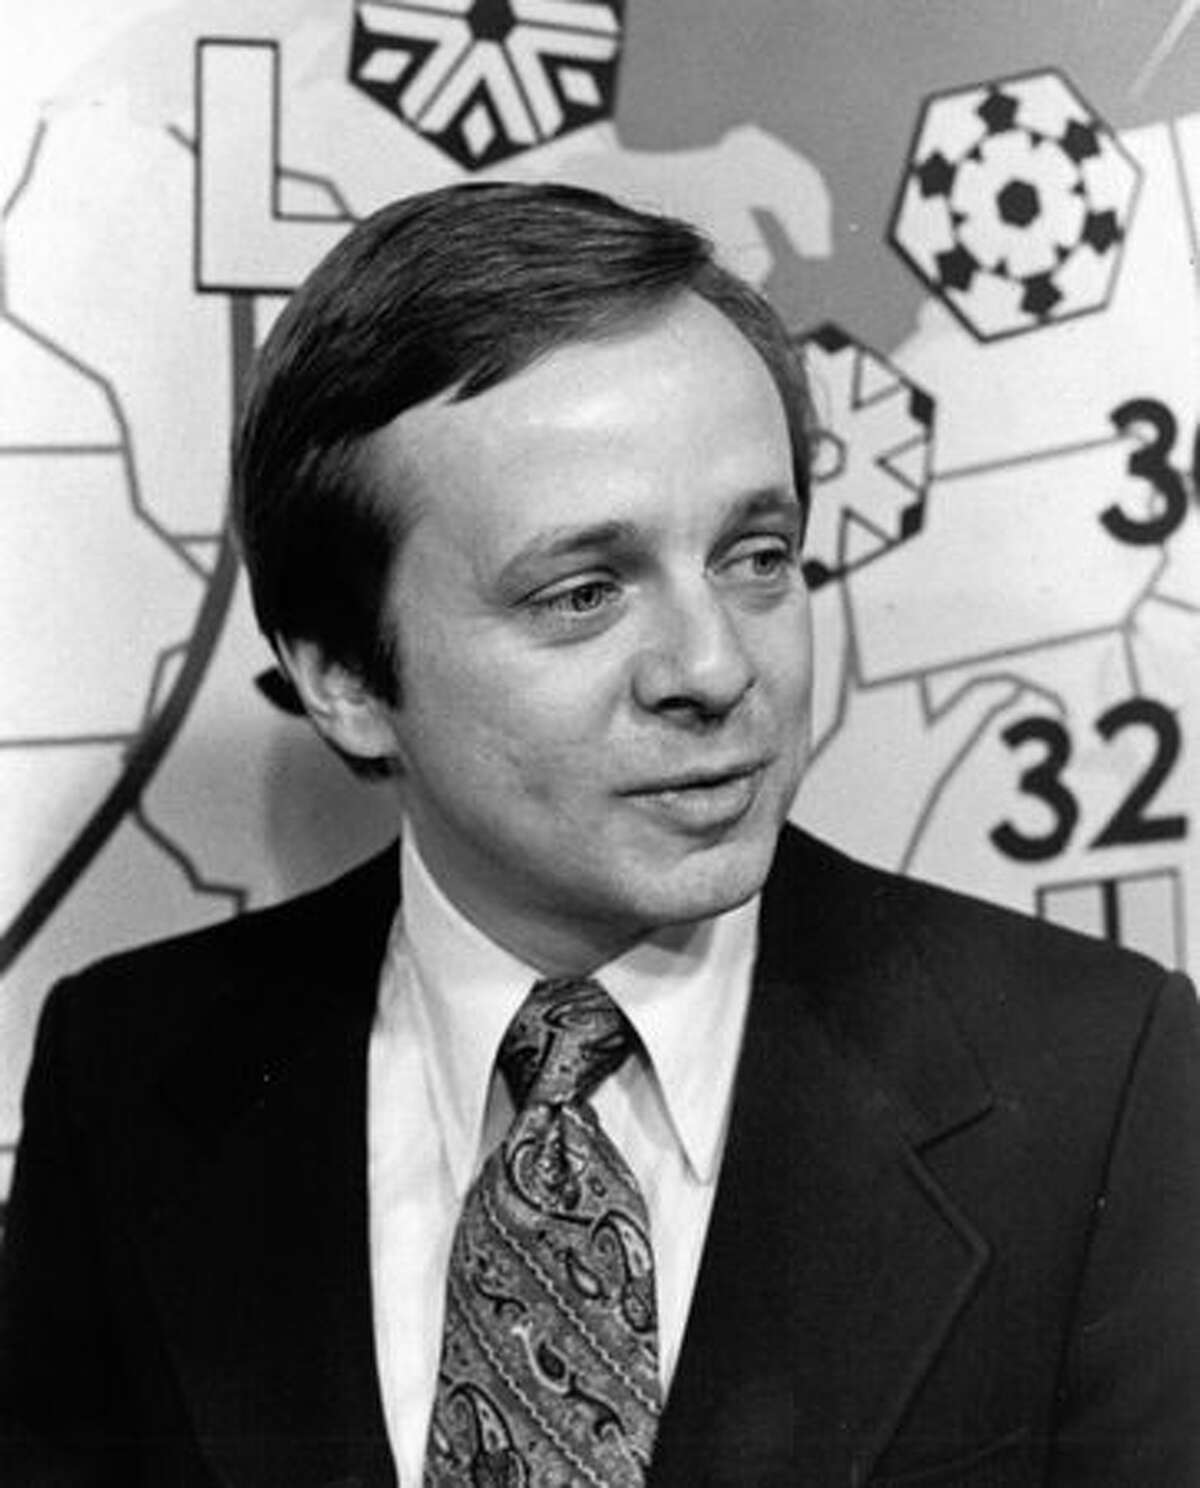 Former KIRO meteorologist Harry Wappler in Feb. 1975. Wappler died April 21 at age 73. (Tom Brownell/seattlepi.com file)